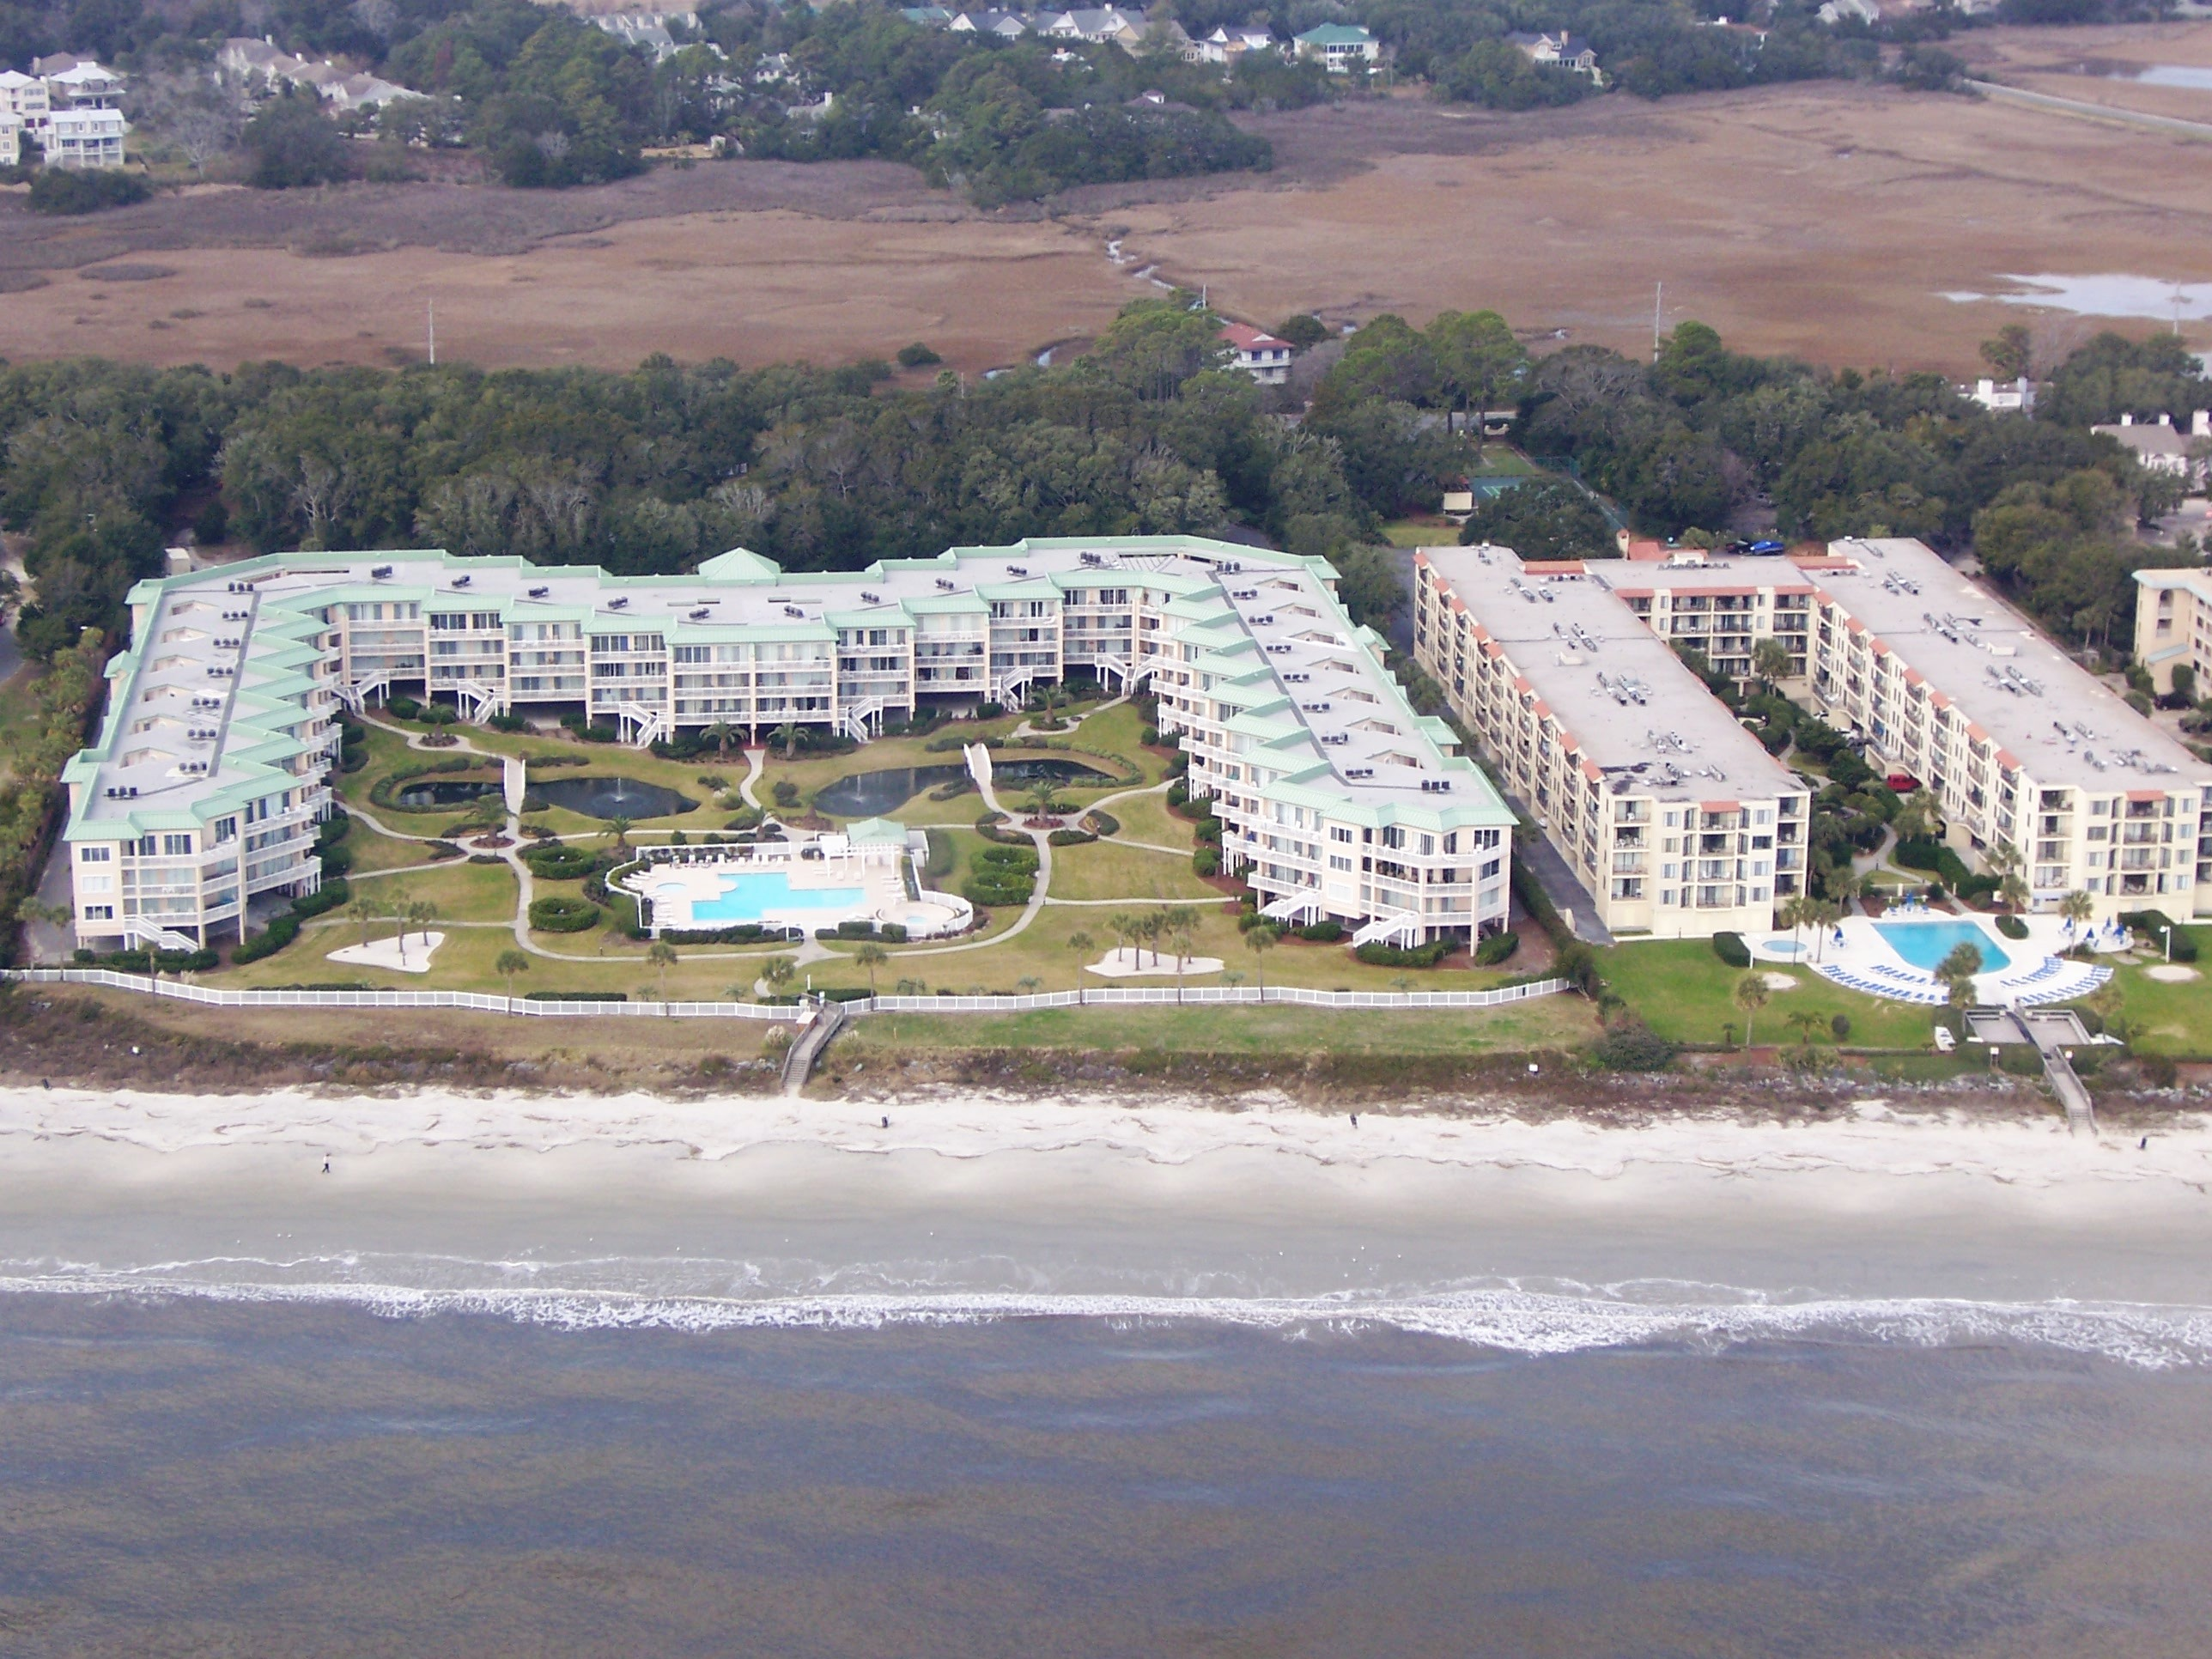 St Simons Grand and the Beach Club